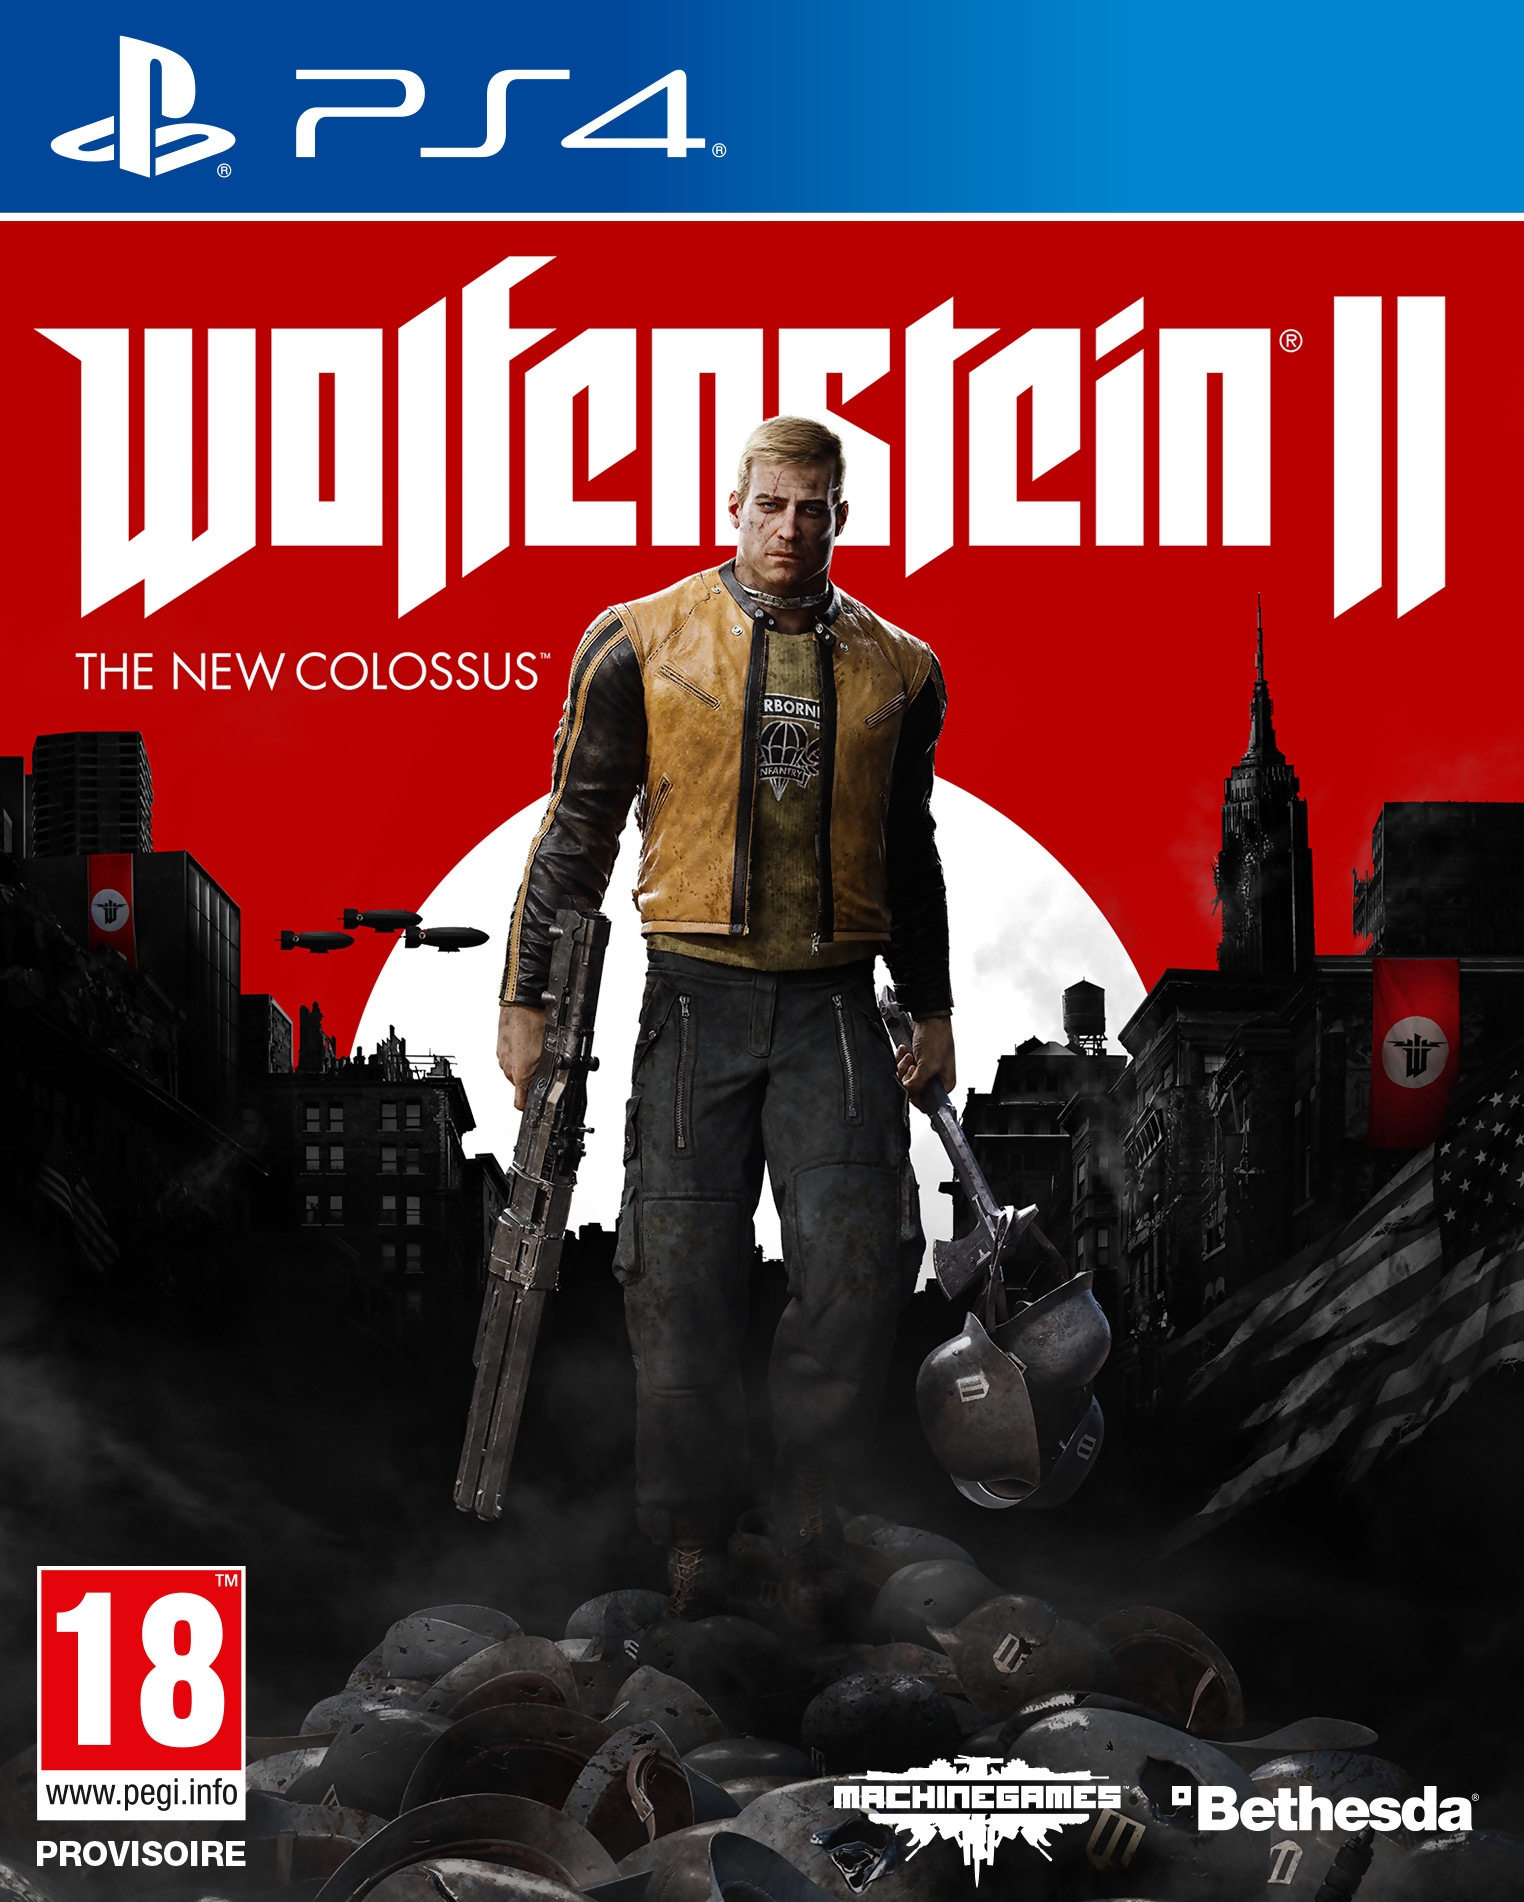 Wolfenstein II: The New Colossus [PS4] 5.05 / 6.72 / 7.02 [EUR] (2017) [Русский] (v1.07)